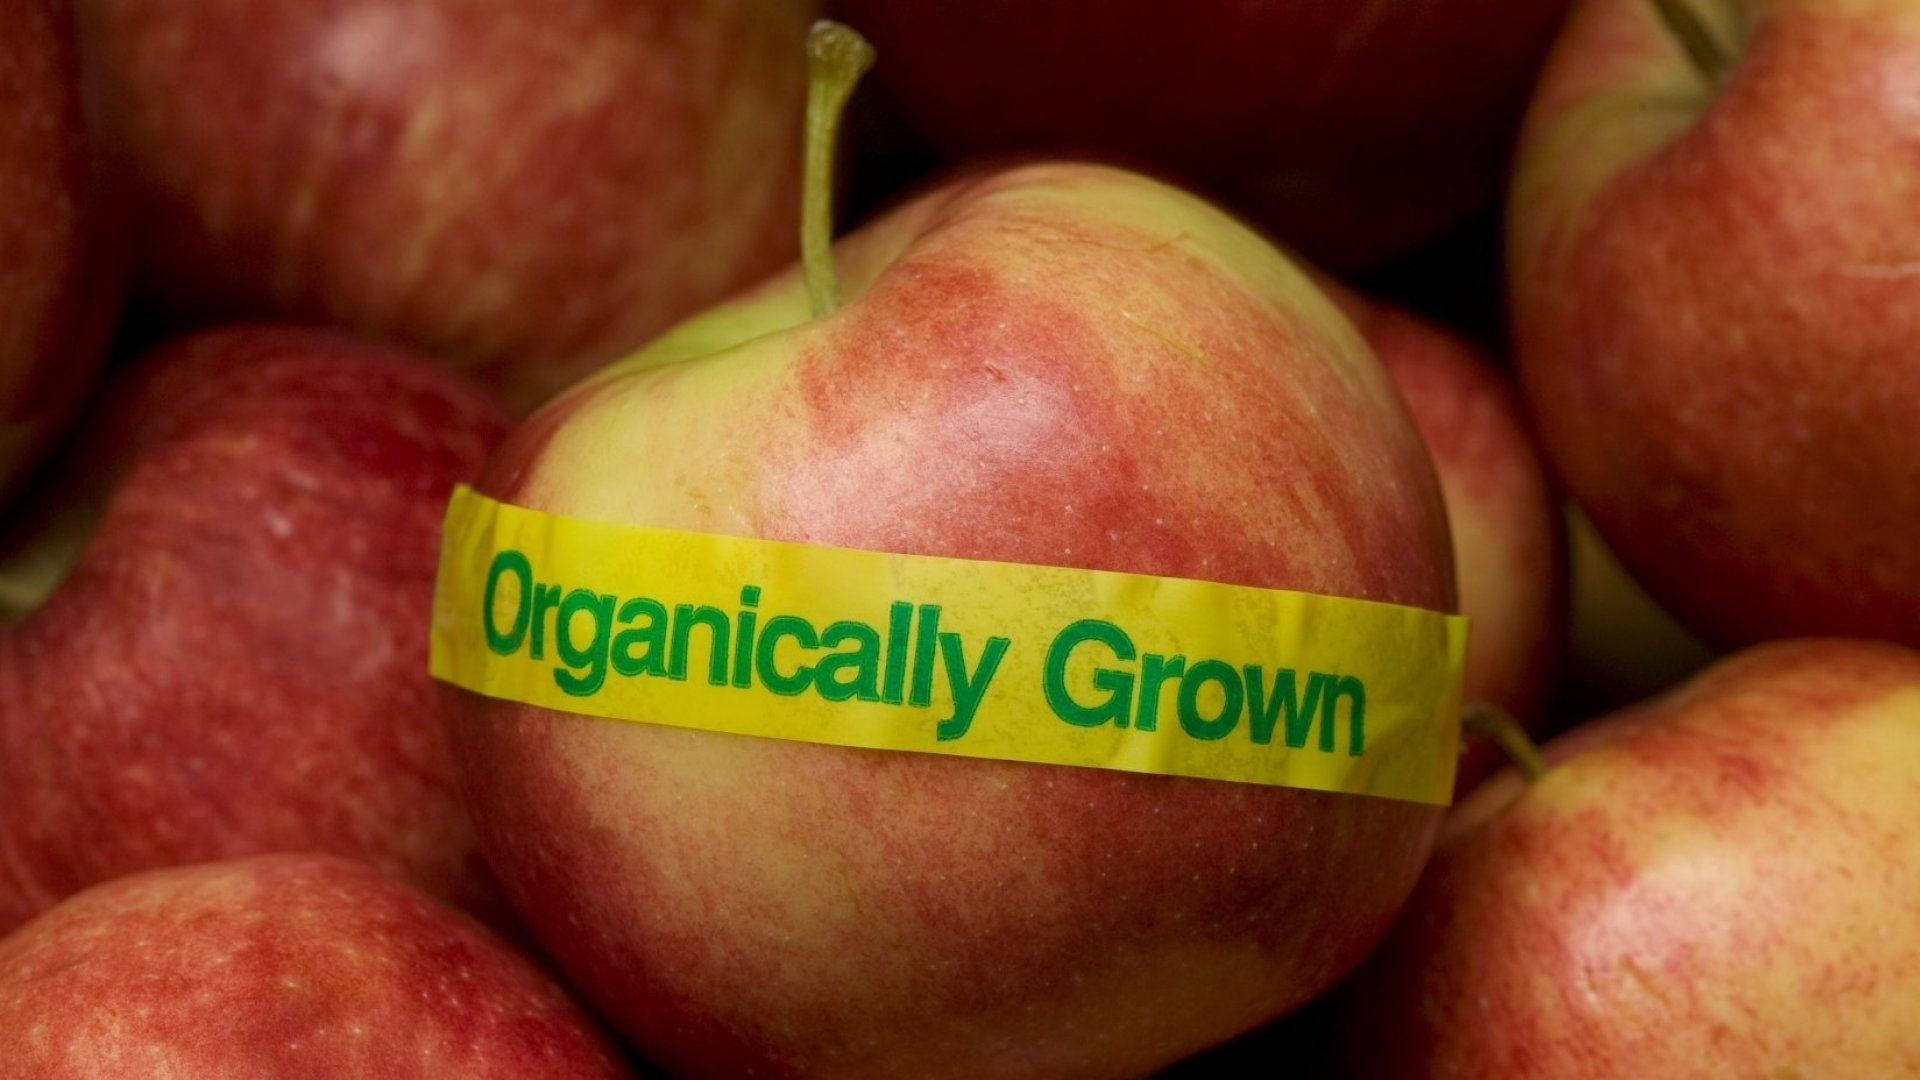 What You Need to Know Before Choosing aFinancial Adviser (or Buying Organic Food)